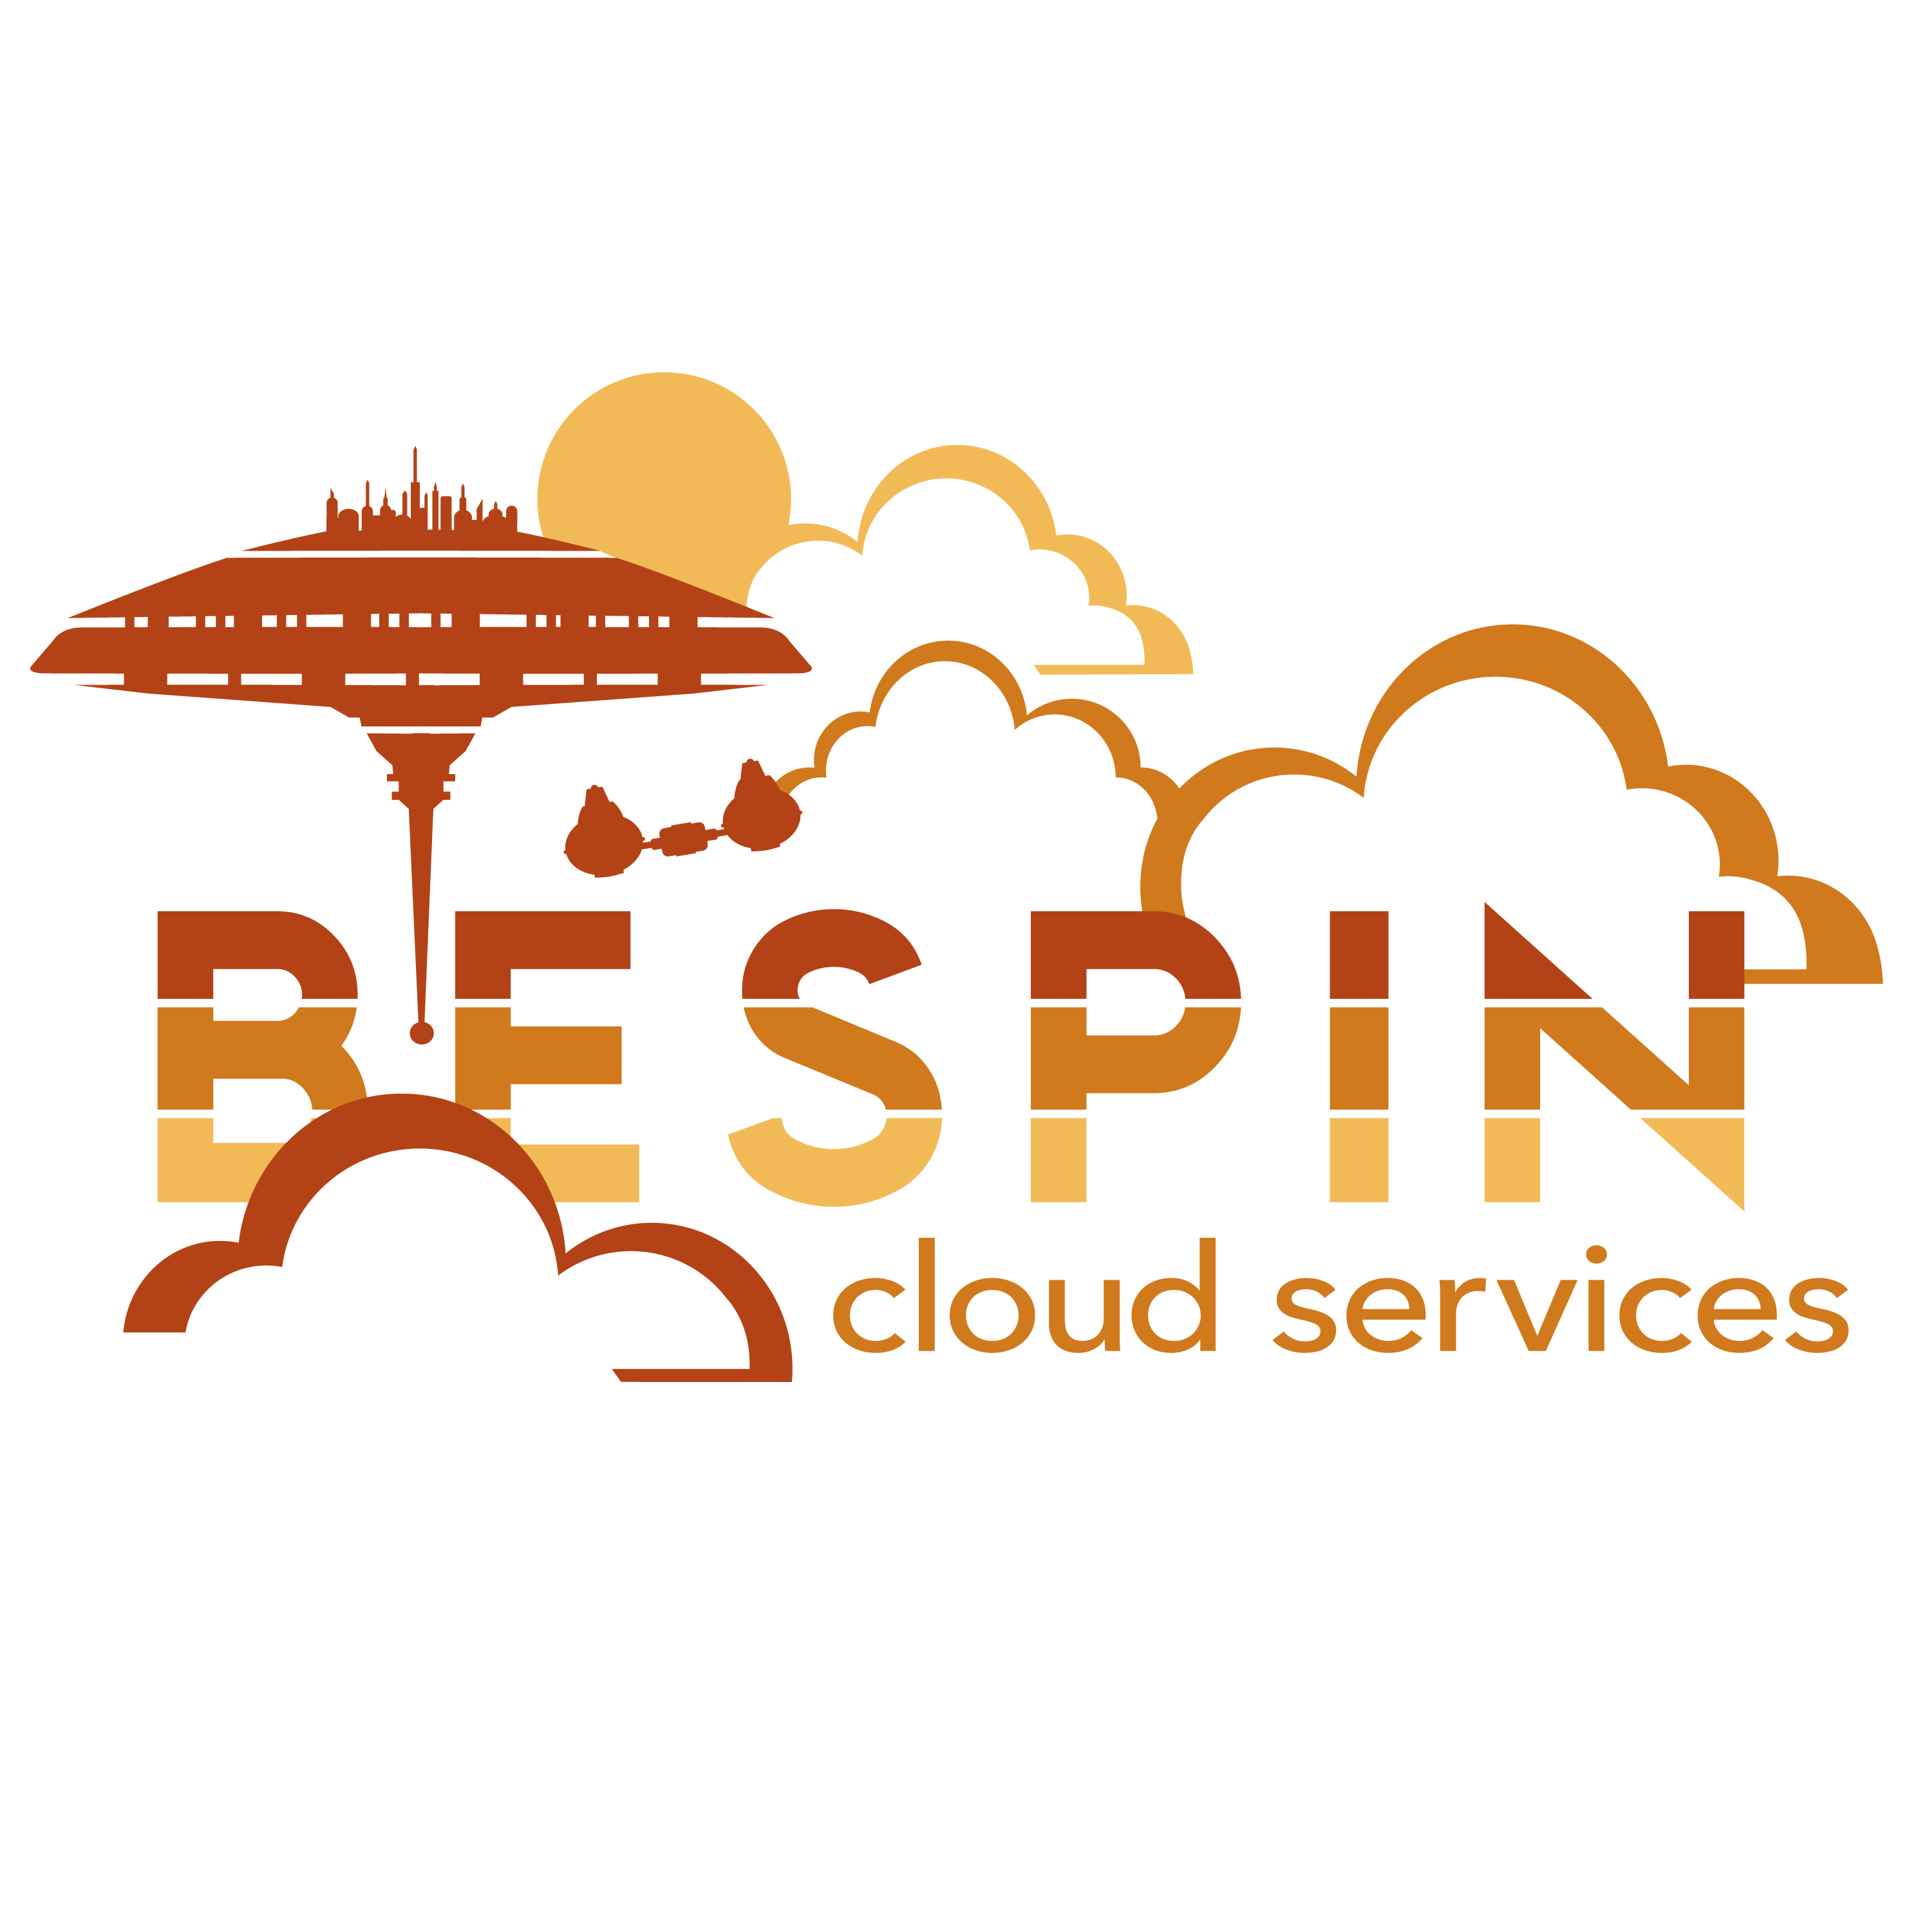 Bespin Cloud Services